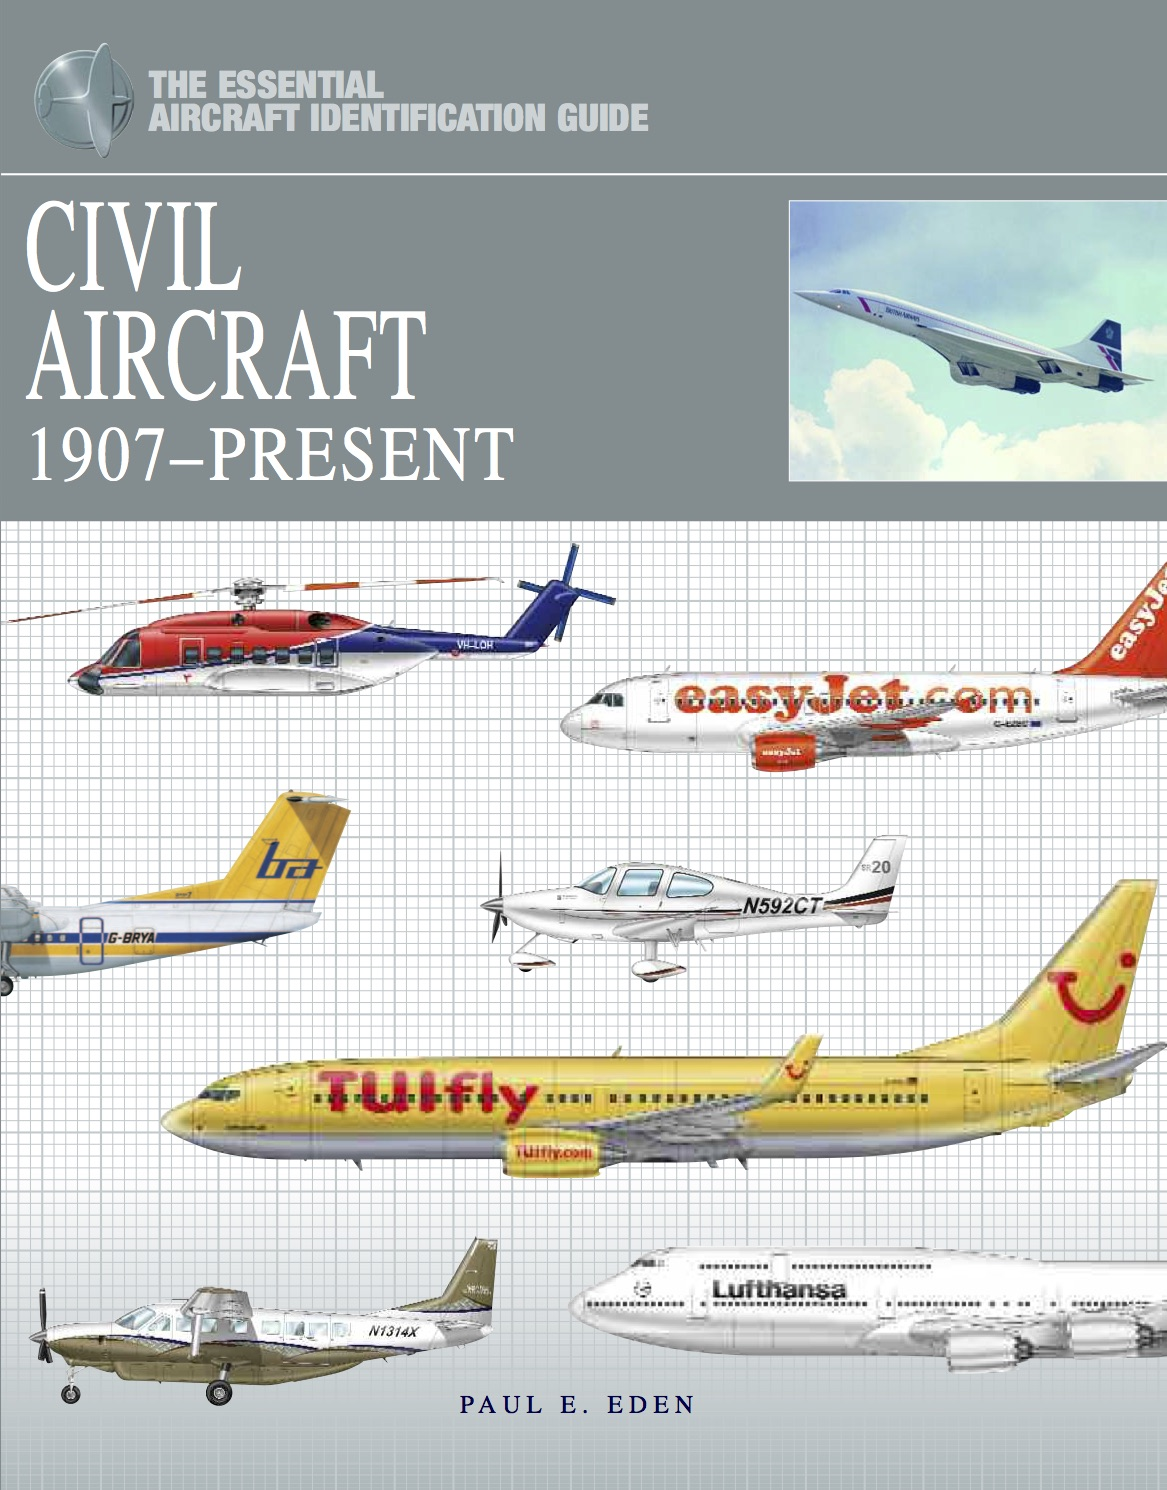 Civil Aircraft: The Essential Aircraft Identification Guide